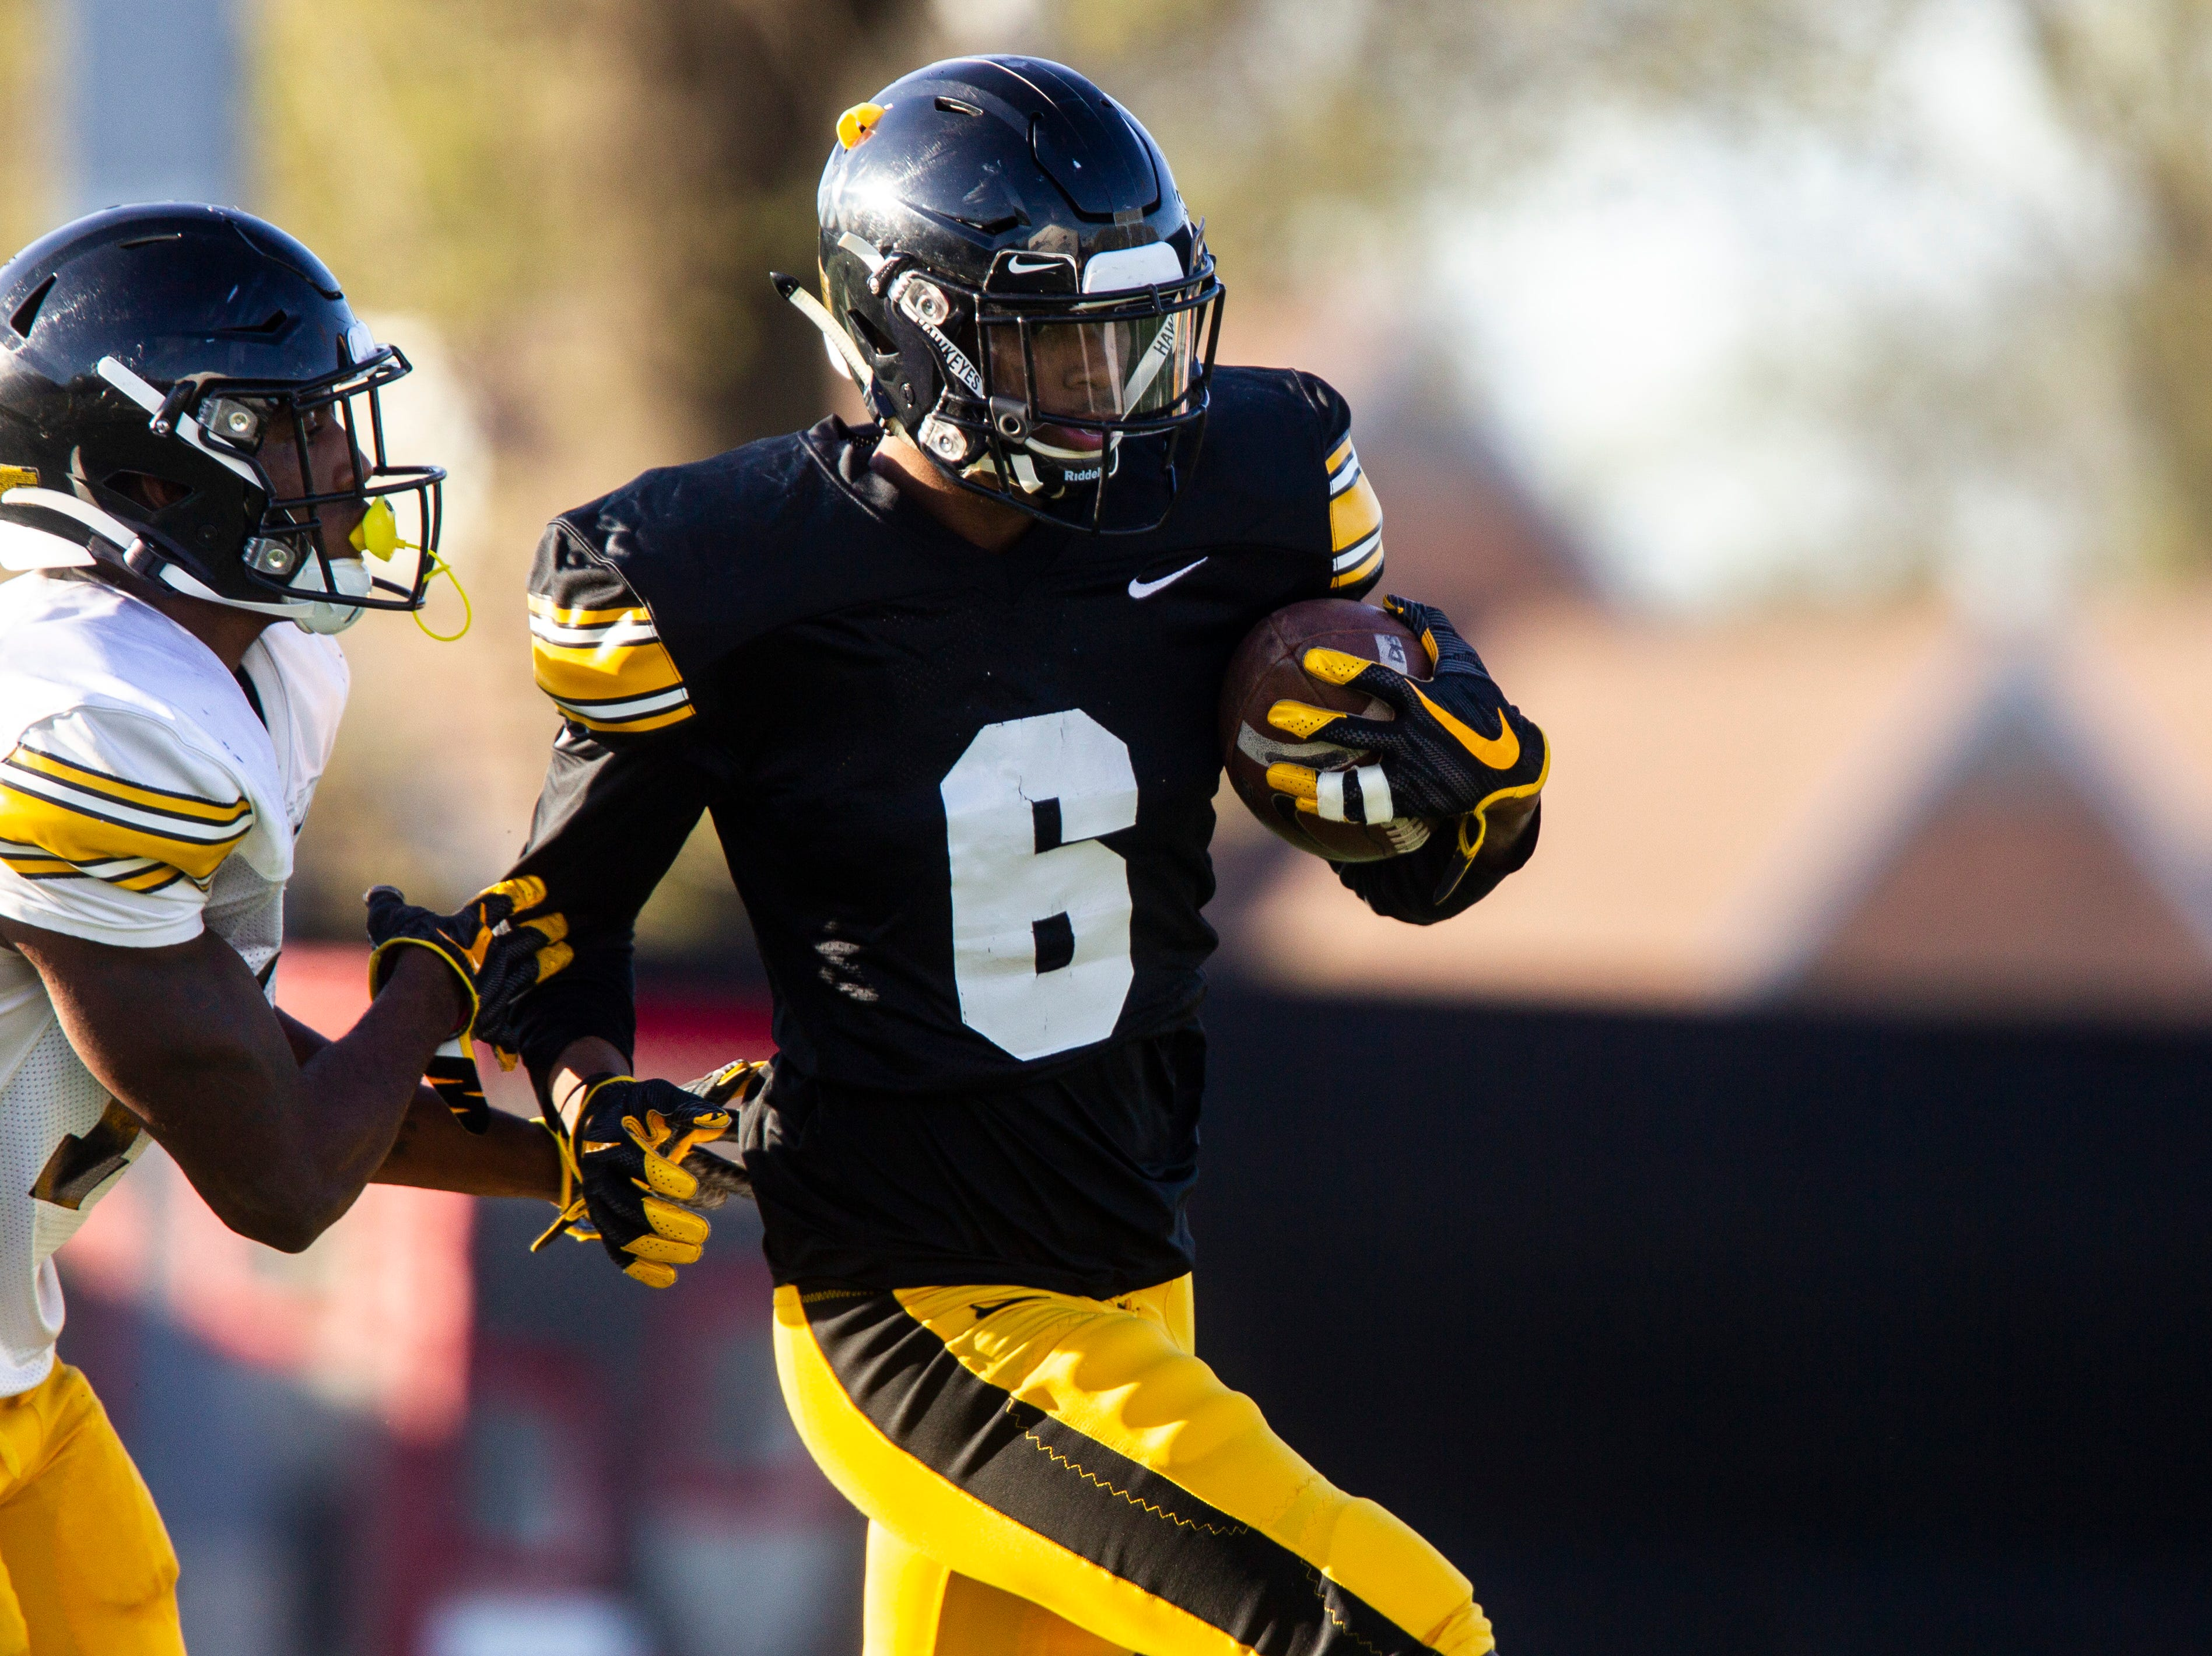 Iowa wide receiver Ihmir Smith-Marsette (6) returns a punt as defensive back Terry Roberts (16) closes in during the final spring football practice, Friday, April 26, 2019, at the University of Iowa outdoor practice facility in Iowa City, Iowa.